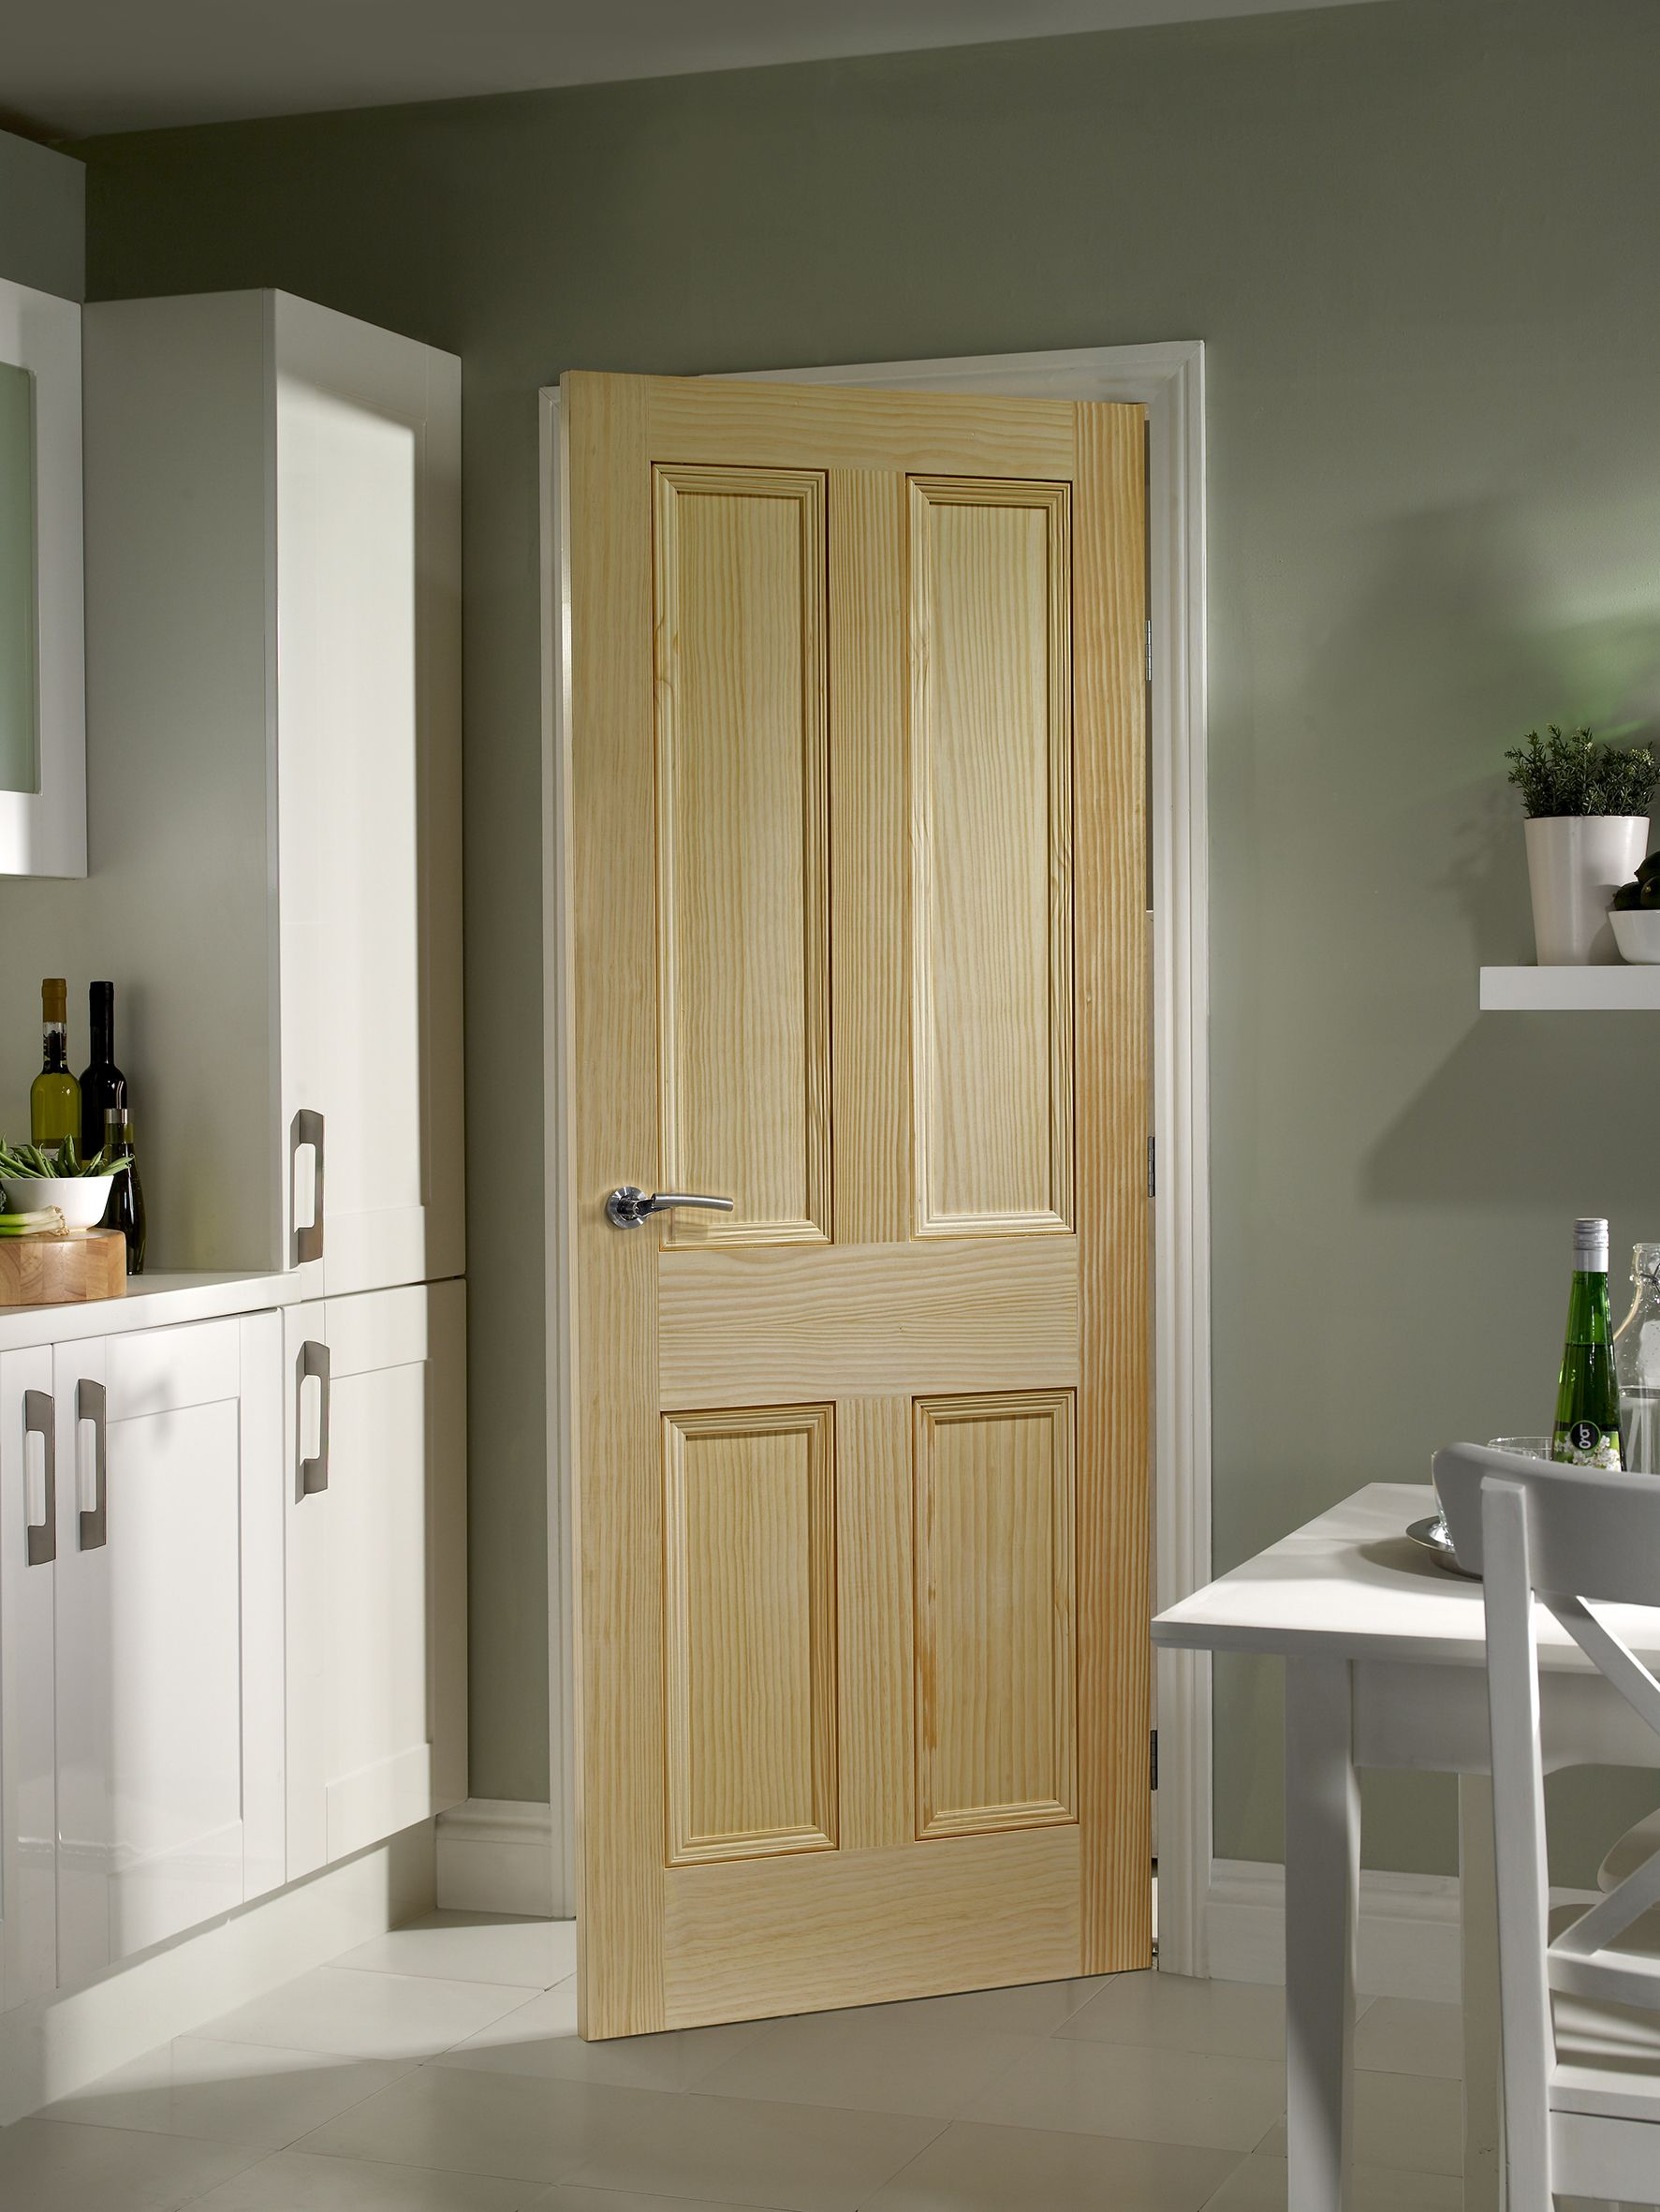 Internal Vertical Grain Pine Door in a traditional 4 panel Victorian style design. Add clear & Internal Vertical Grain Pine Door in a traditional 4 panel Victorian ...